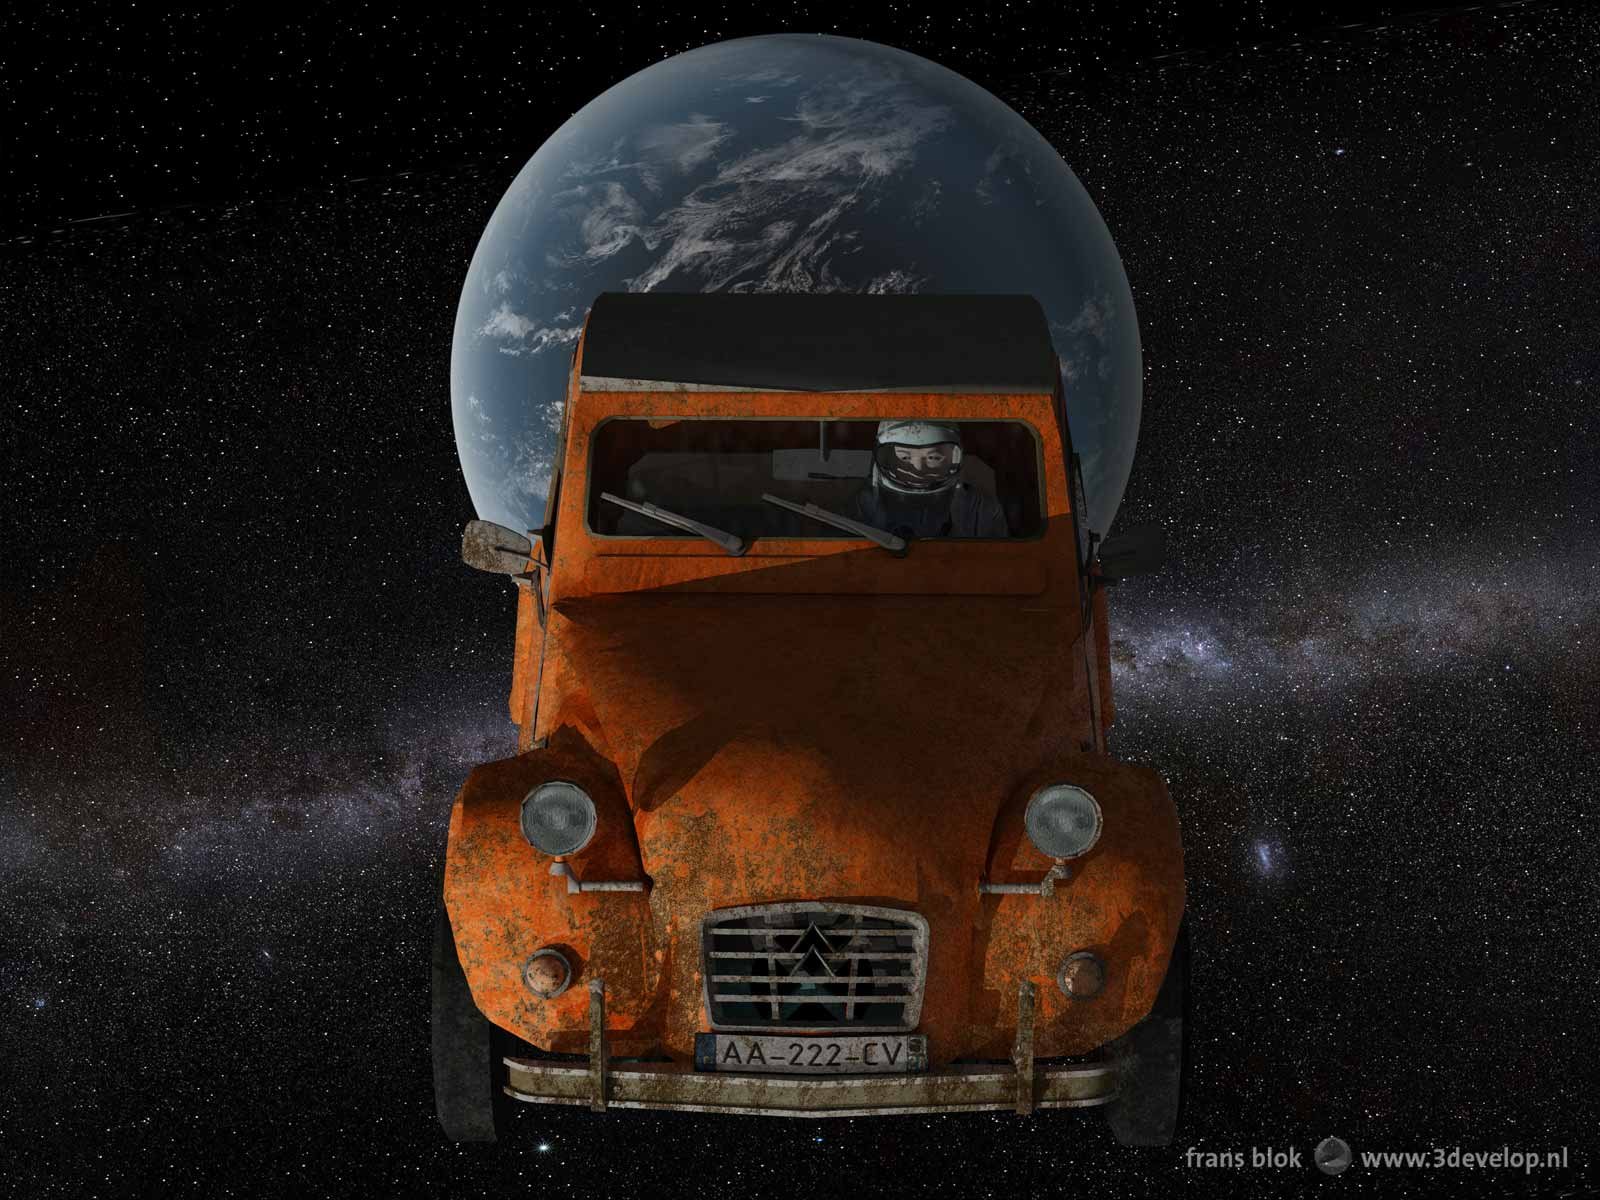 An old and rusty Citroën Deux Chevaux, launched with a Falcon Heavy rocket by SpaceX, en route to Mars